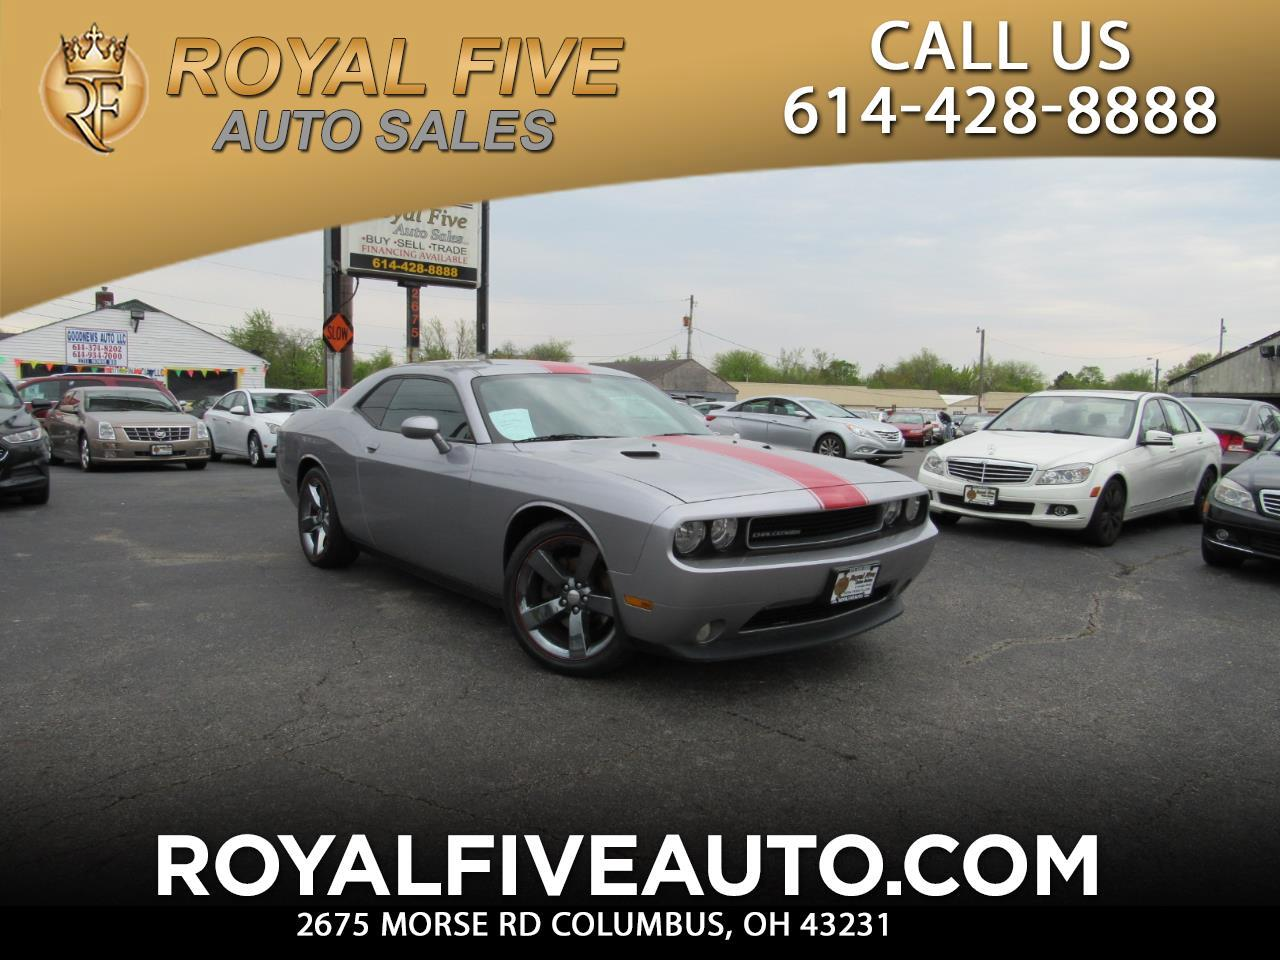 Cars For Sale In Columbus Ohio >> Buy Here Pay Here Cars For Sale Columbus Oh 43231 Royal Five